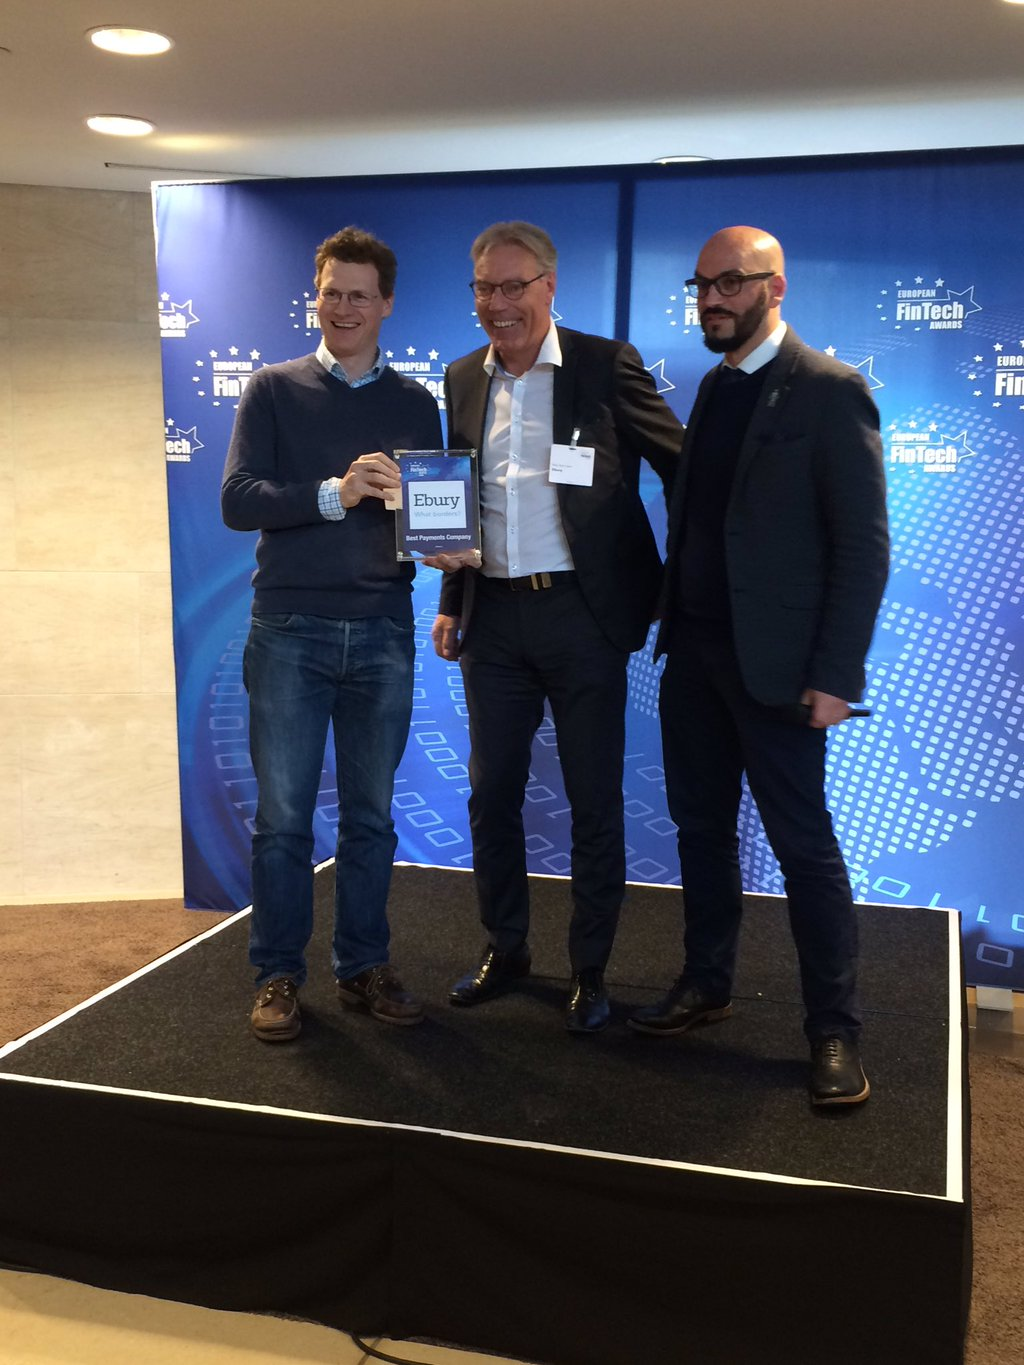 EU FinTech Awards Winner Toby-Rob